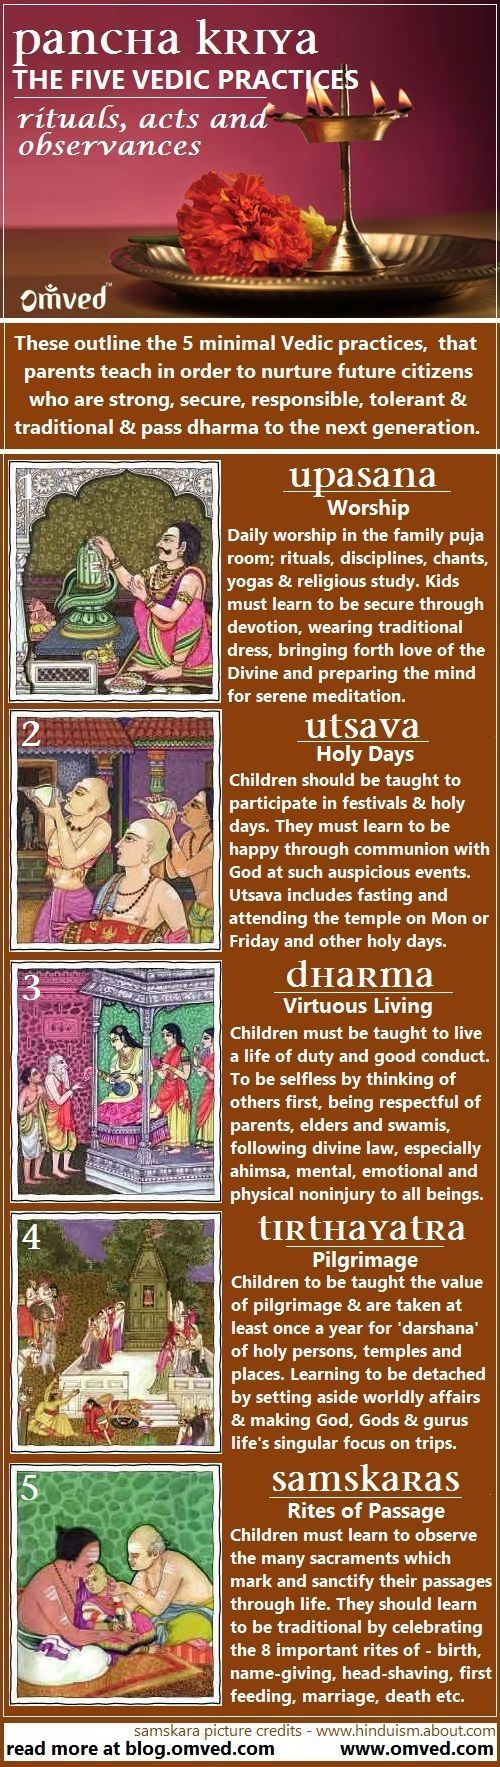 The Five Vedic Practices